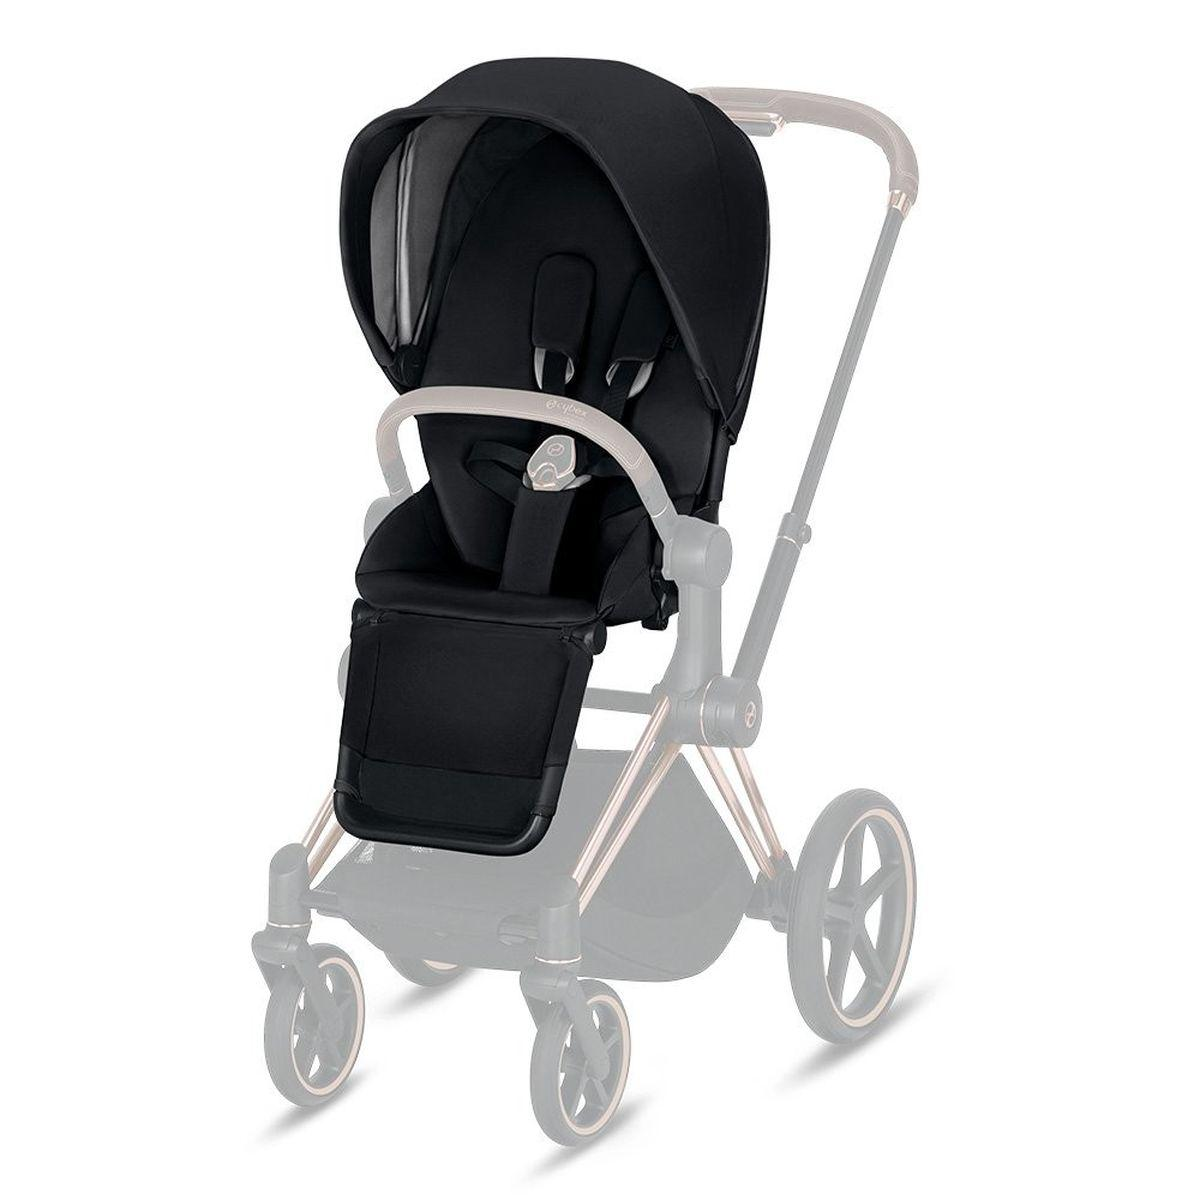 Assise-habillage poussette PRIAM Cybex premium black-black